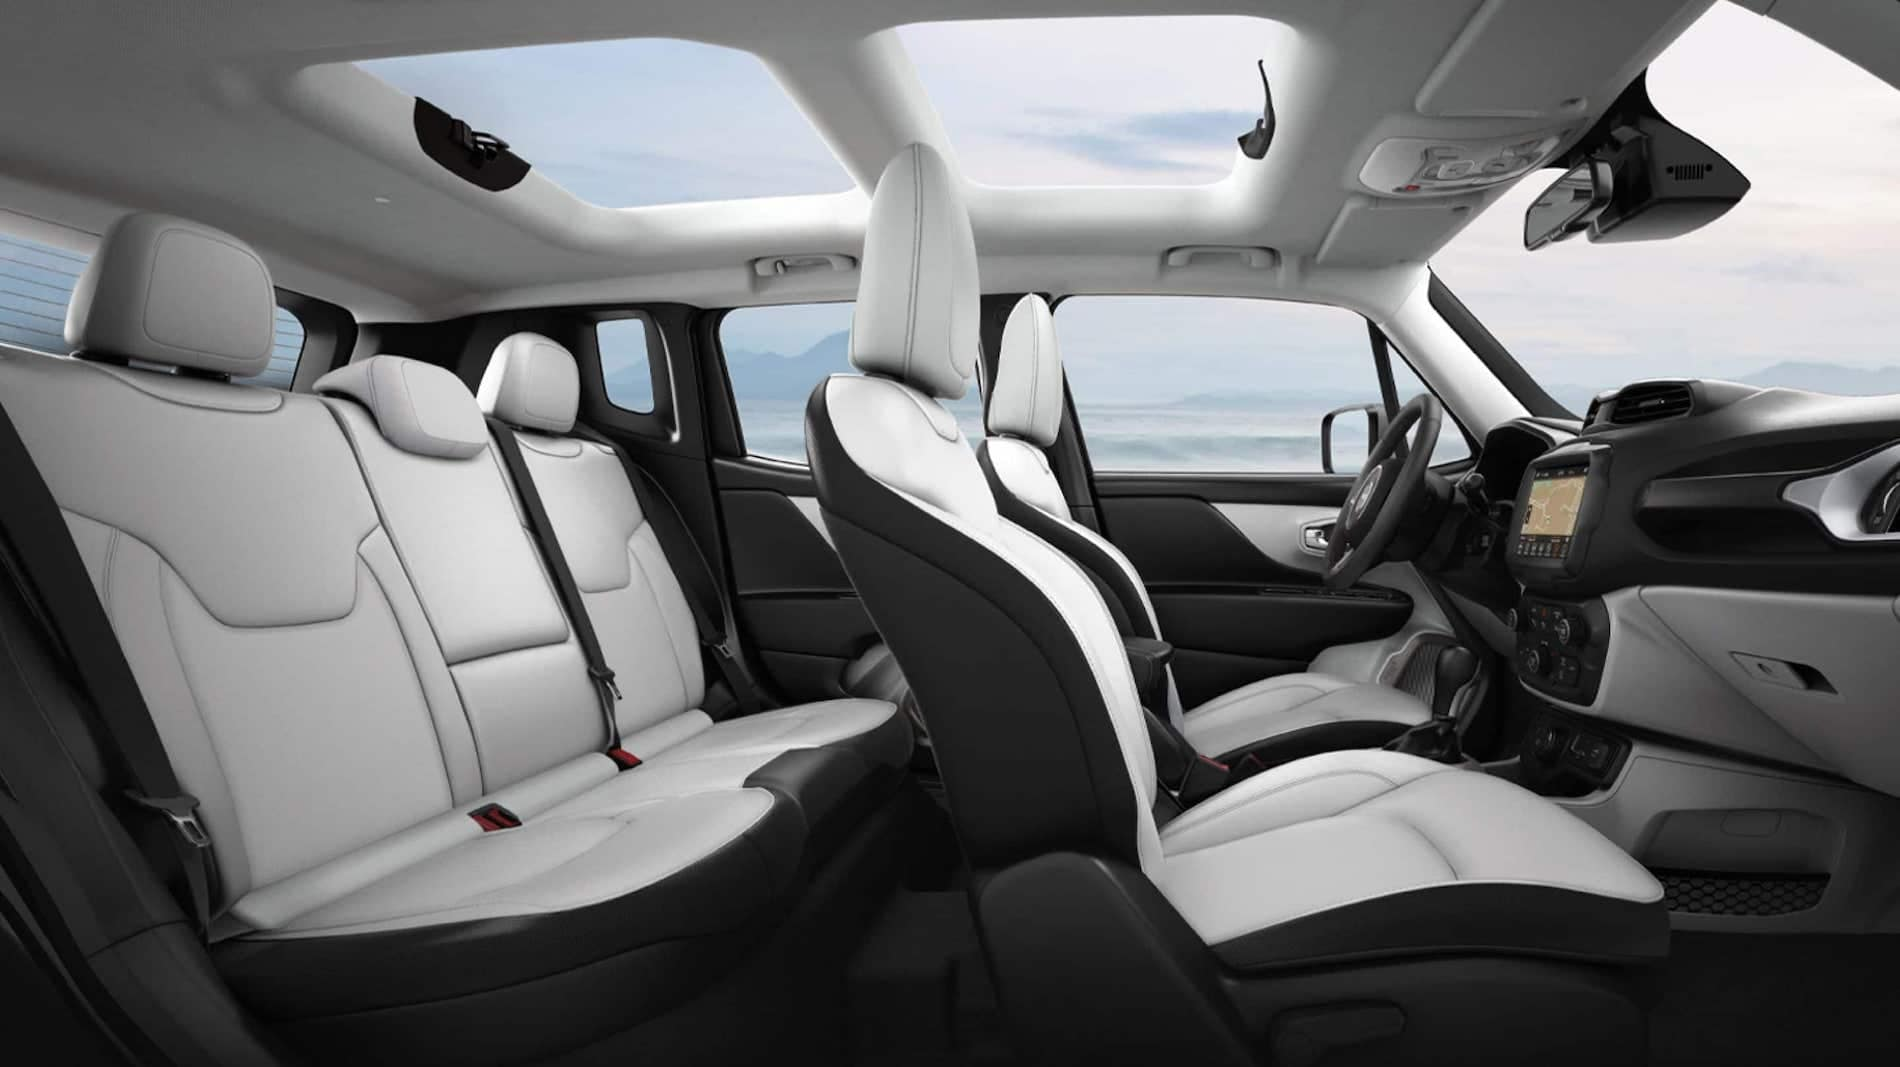 2021 Jeep Renegade interior available in Salisbury MD